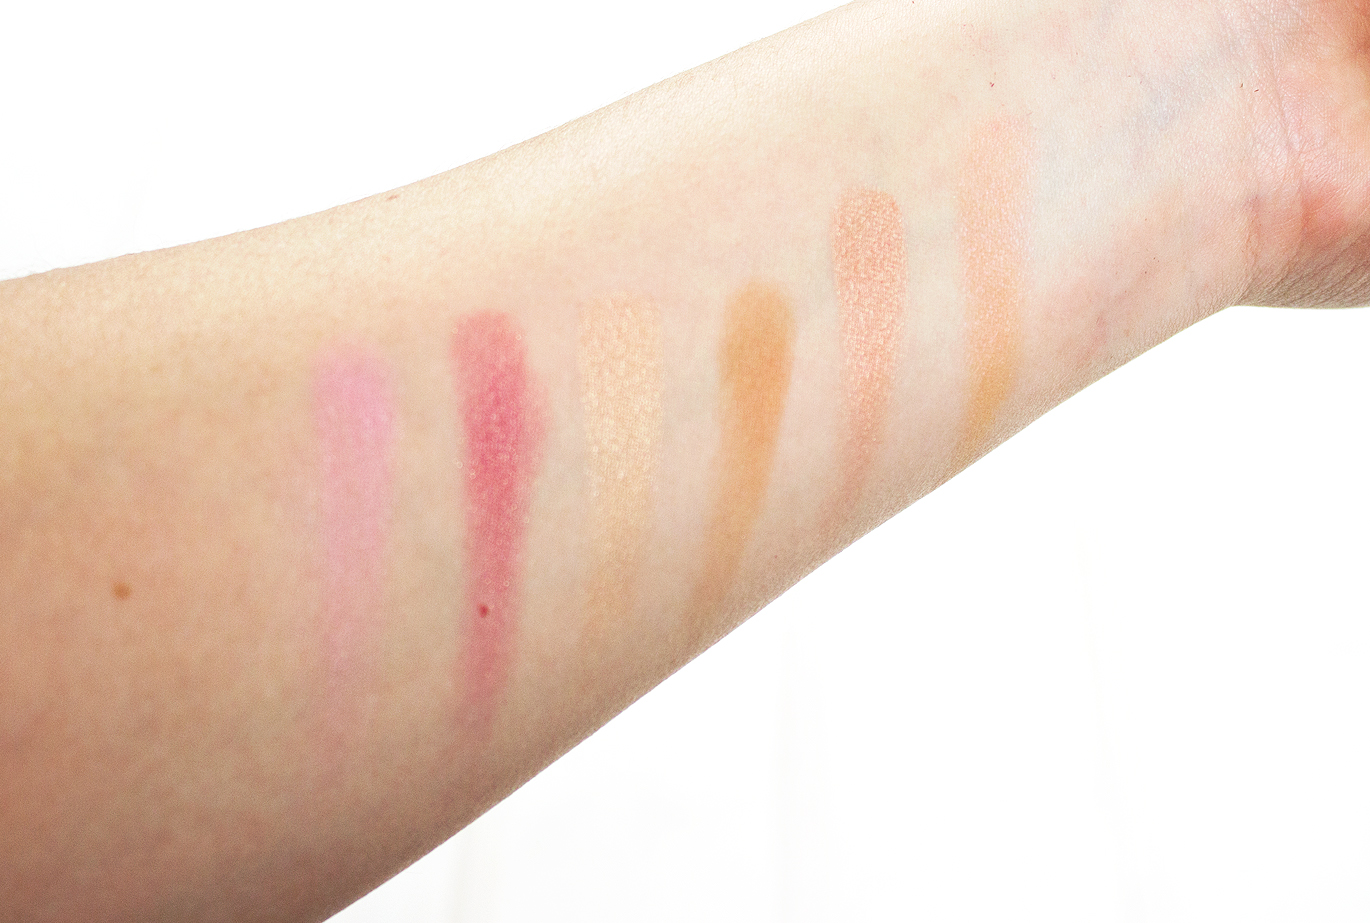 Urban Decay x Gwen Stefani Blush Palette Swatches